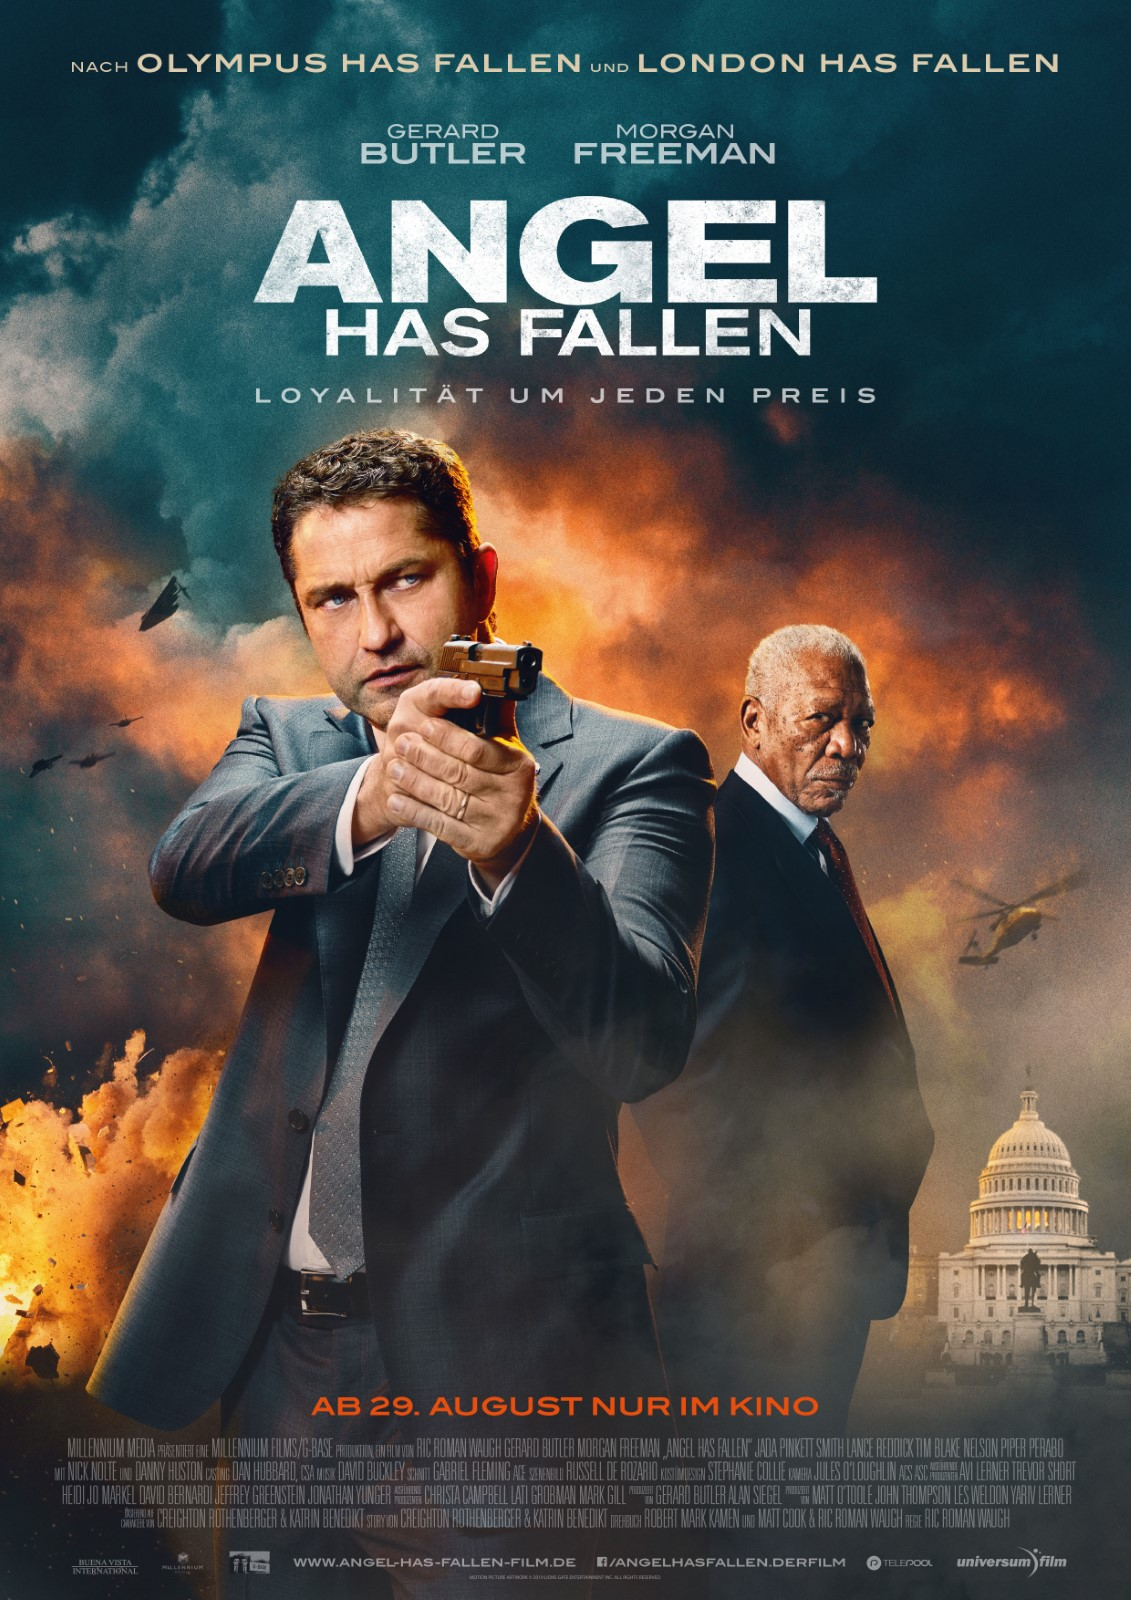 Angel Has Fallen 2019 Hindi ORG Dual Audio 1080p BluRay ESubs 2GB x264 AAC